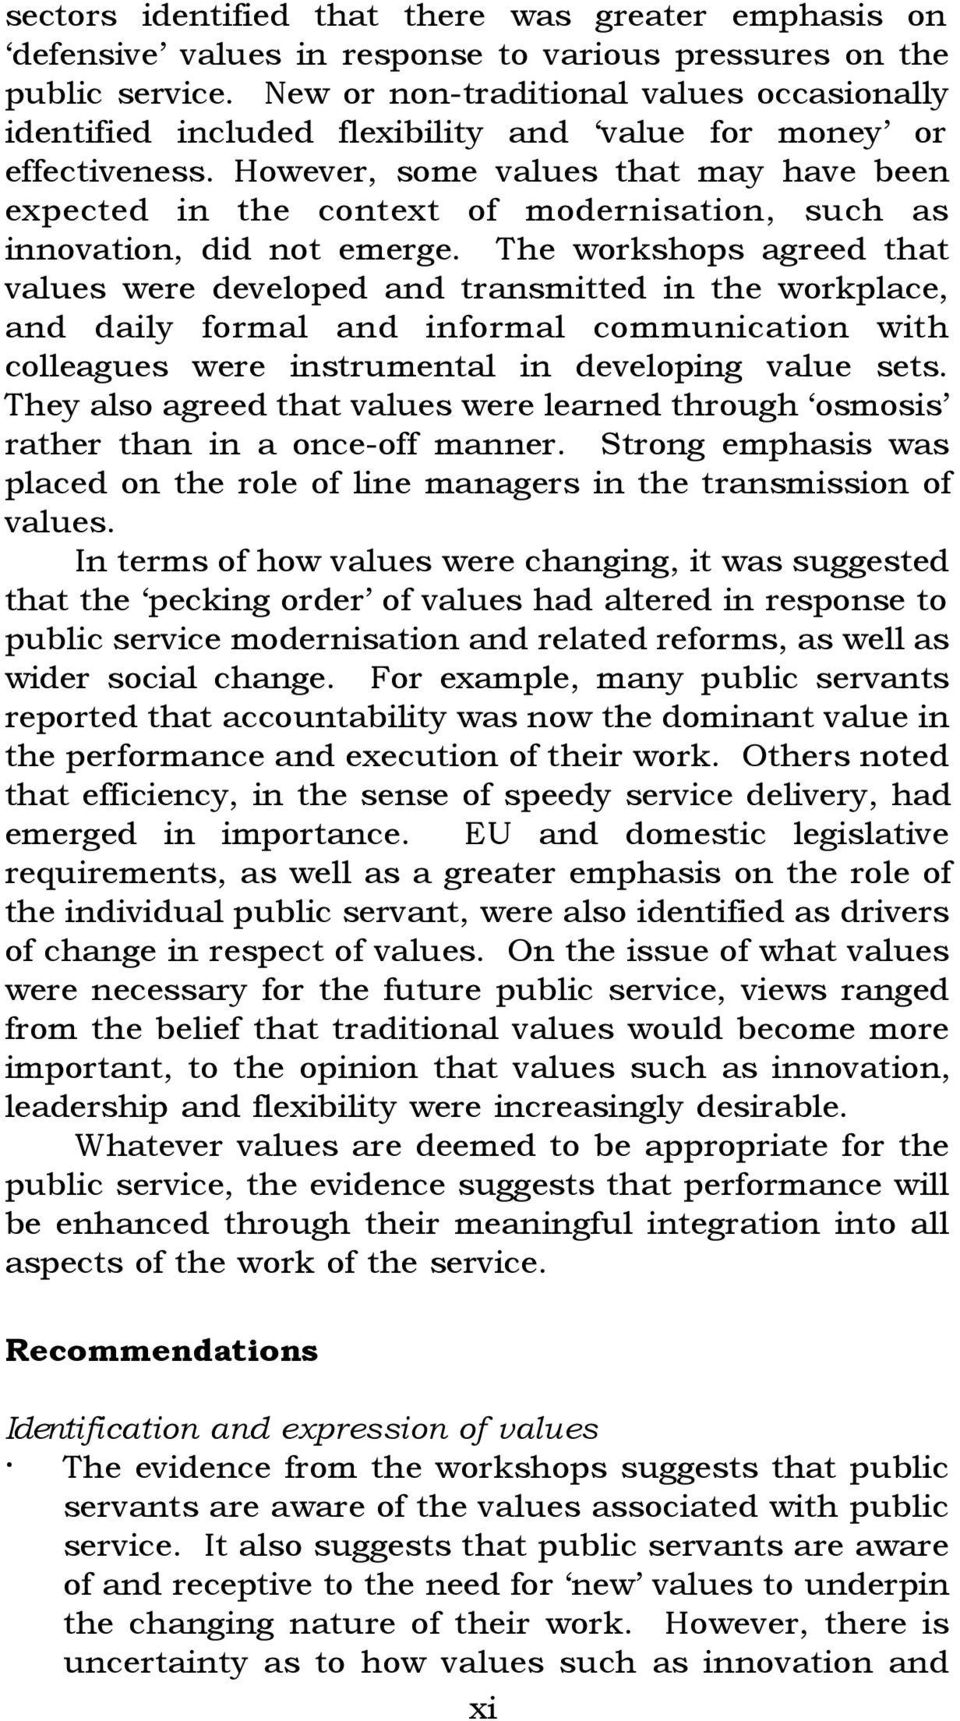 However, some values that may have been expected in the context of modernisation, such as innovation, did not emerge.